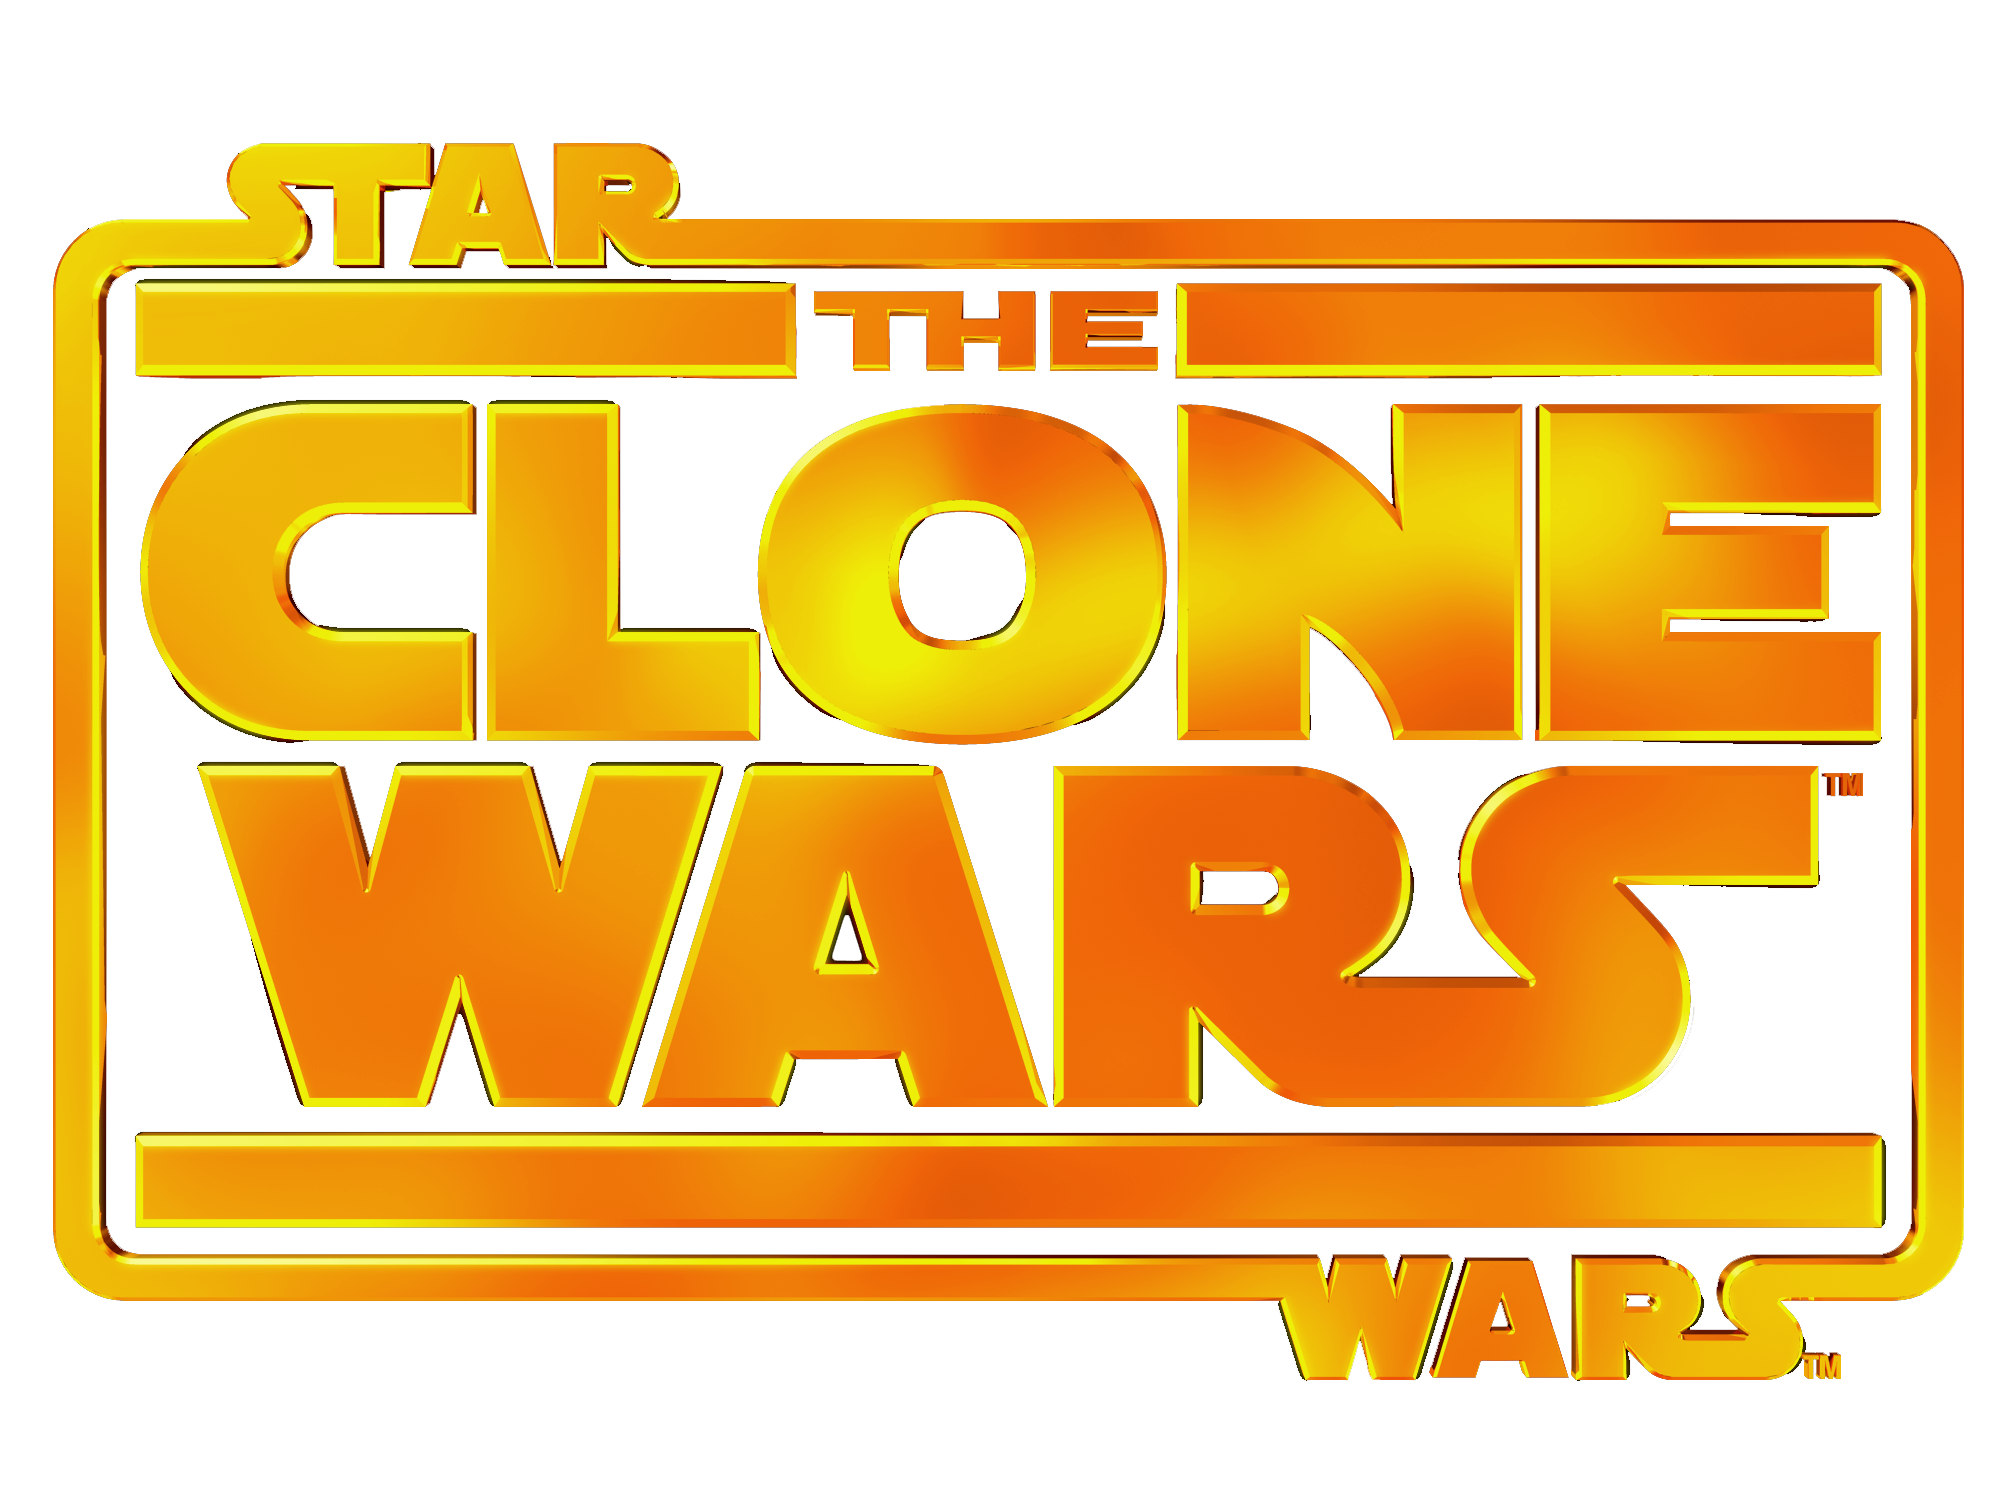 Lego star wars logo clipart jpg library To Fans of Star Wars: The Clone Wars: Thank You | StarWars.com jpg library